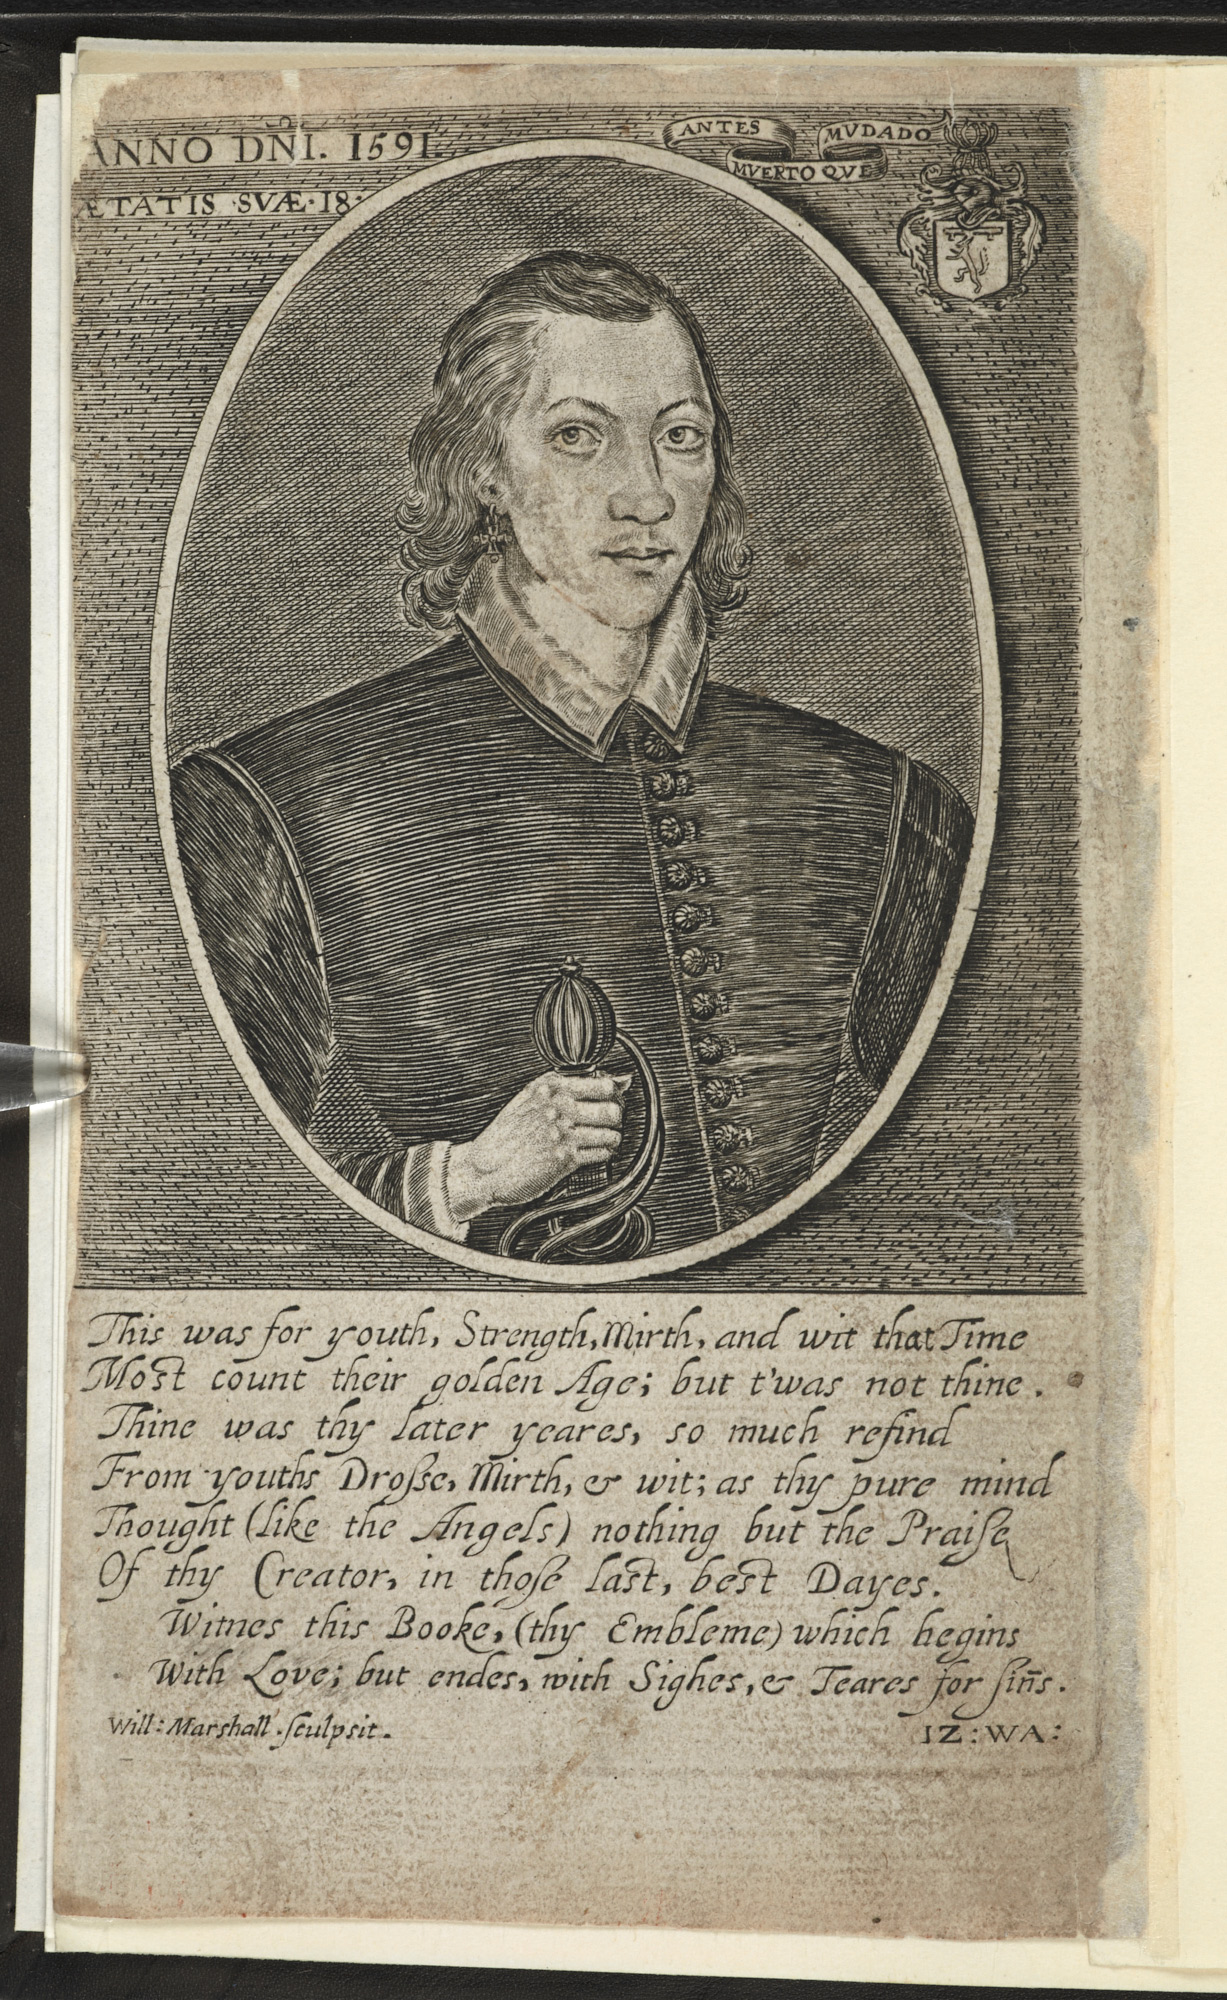 Portrait of John Donne, aged 18